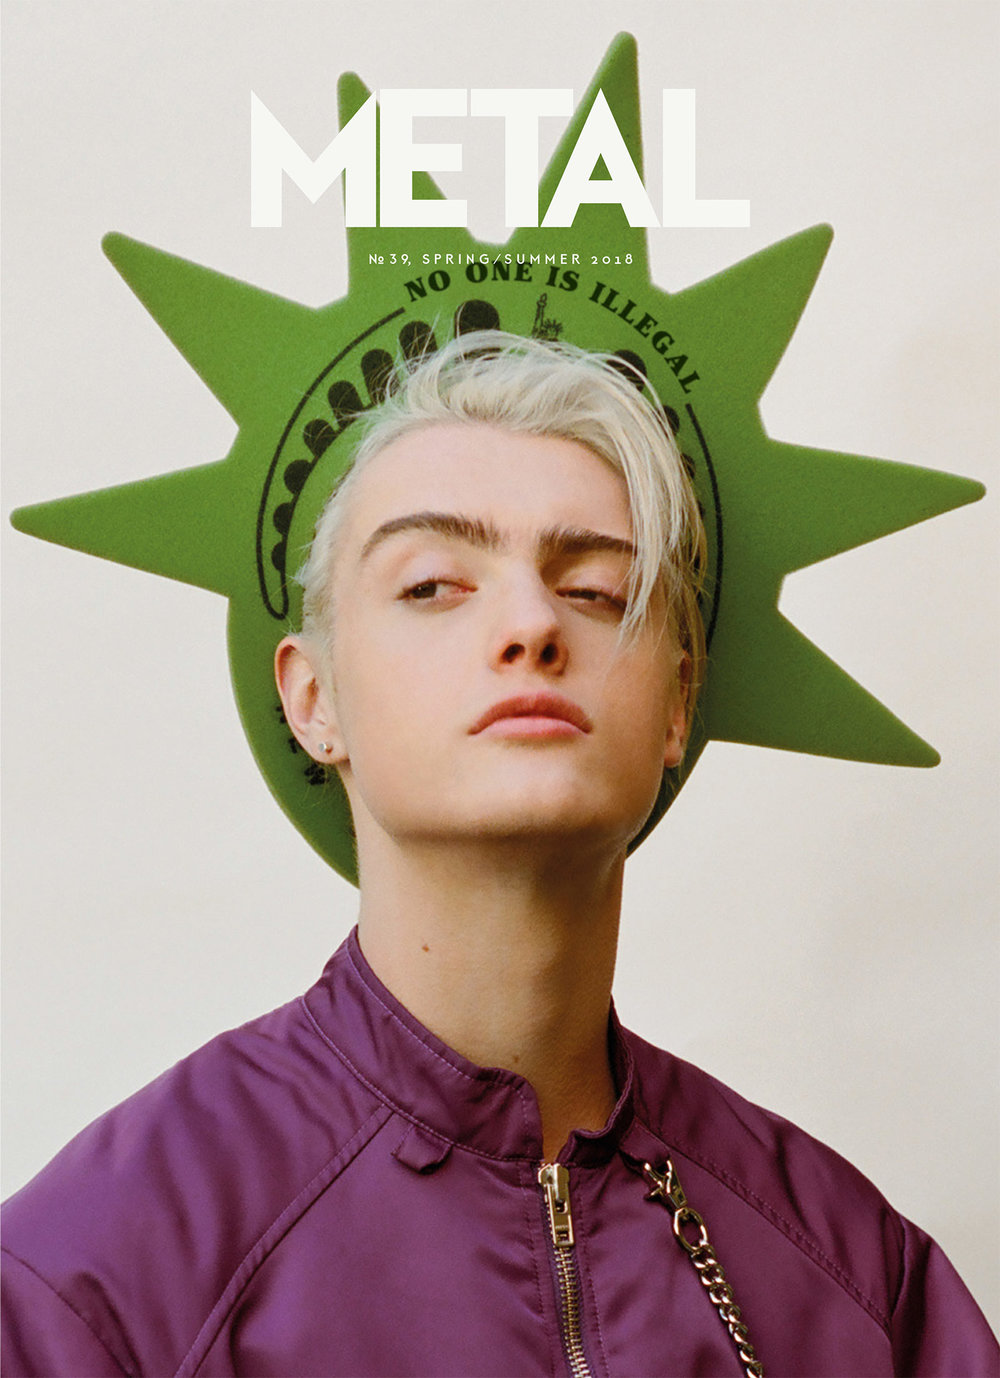 Cover 2 - Casil McArthur (Soul Artist Management) in Kenzo by Clément Pascal.